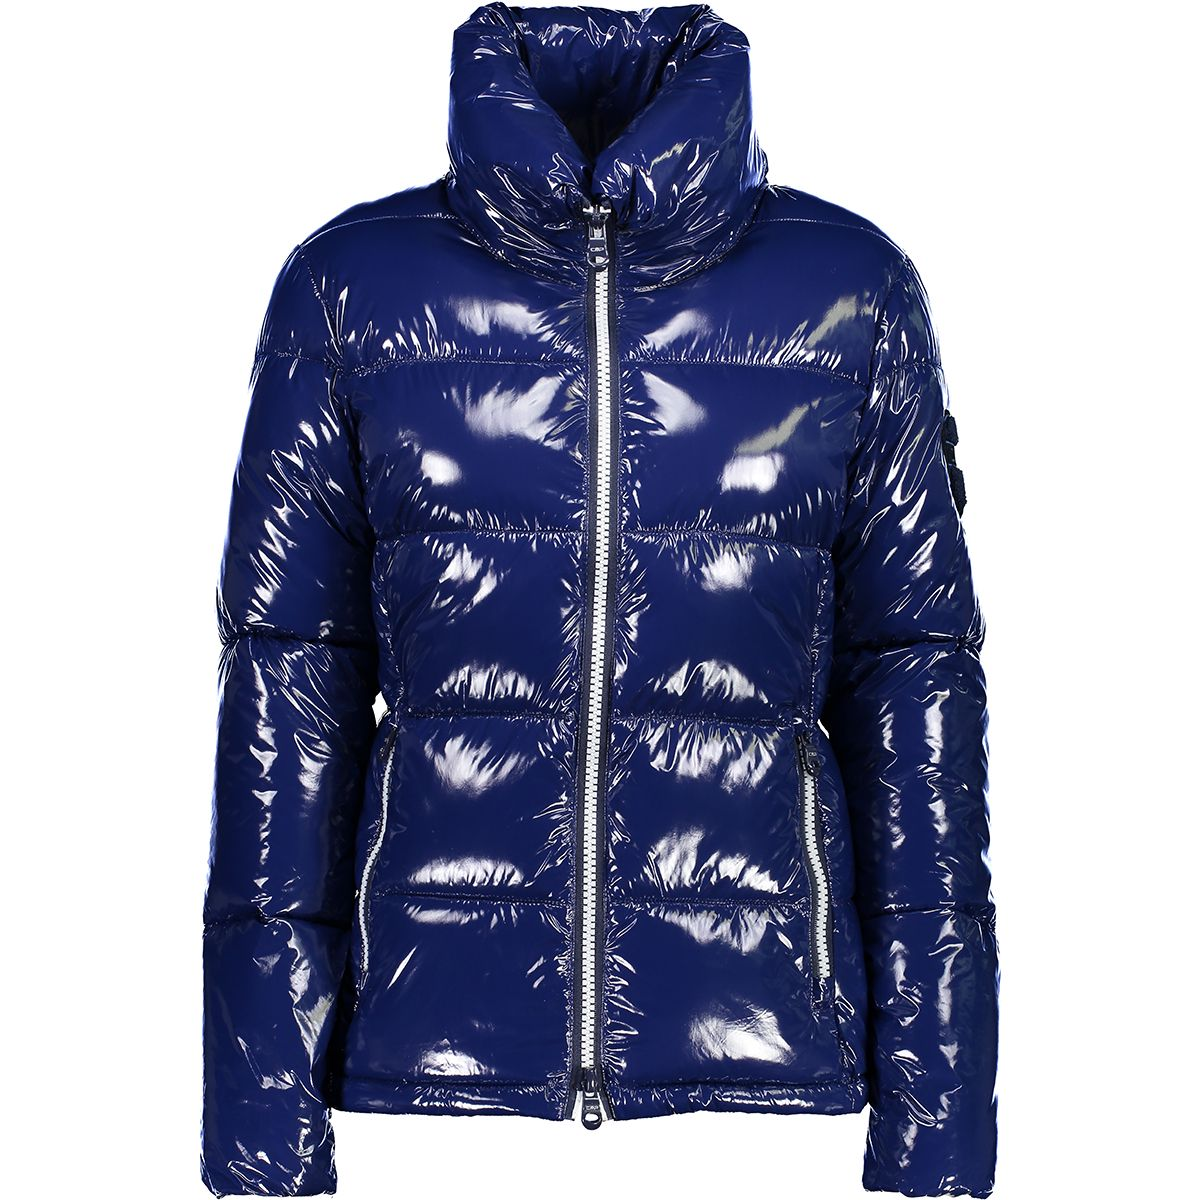 CMP Damen Shiny Flock Jacke (Größe 4XL, Blau) | Isolationsjacken > Damen